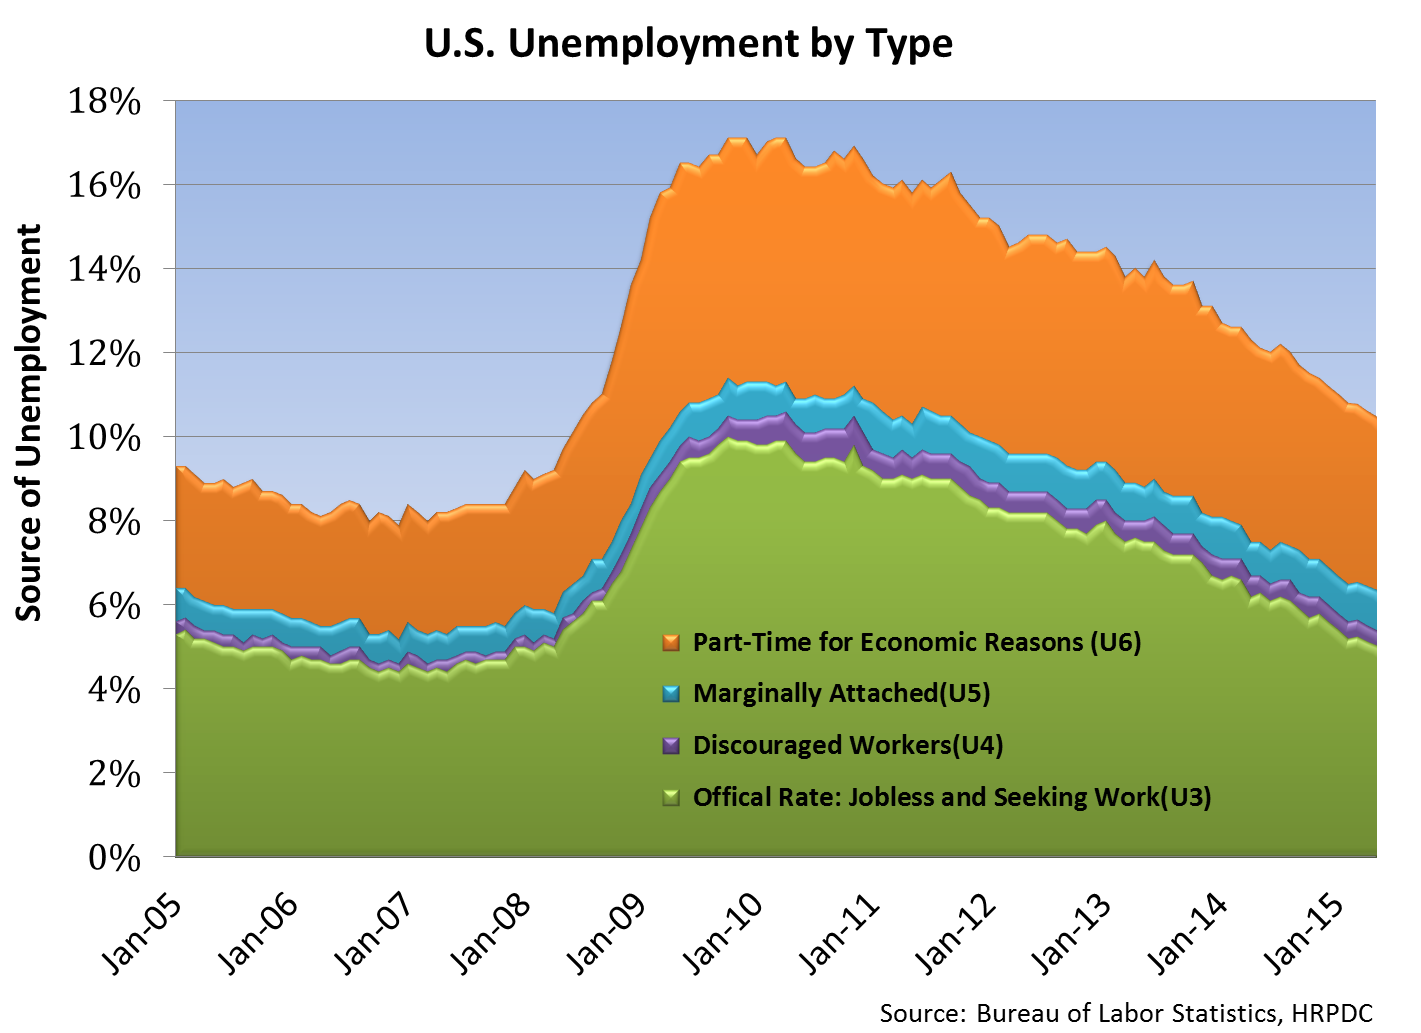 U.S. Unemployment by Type